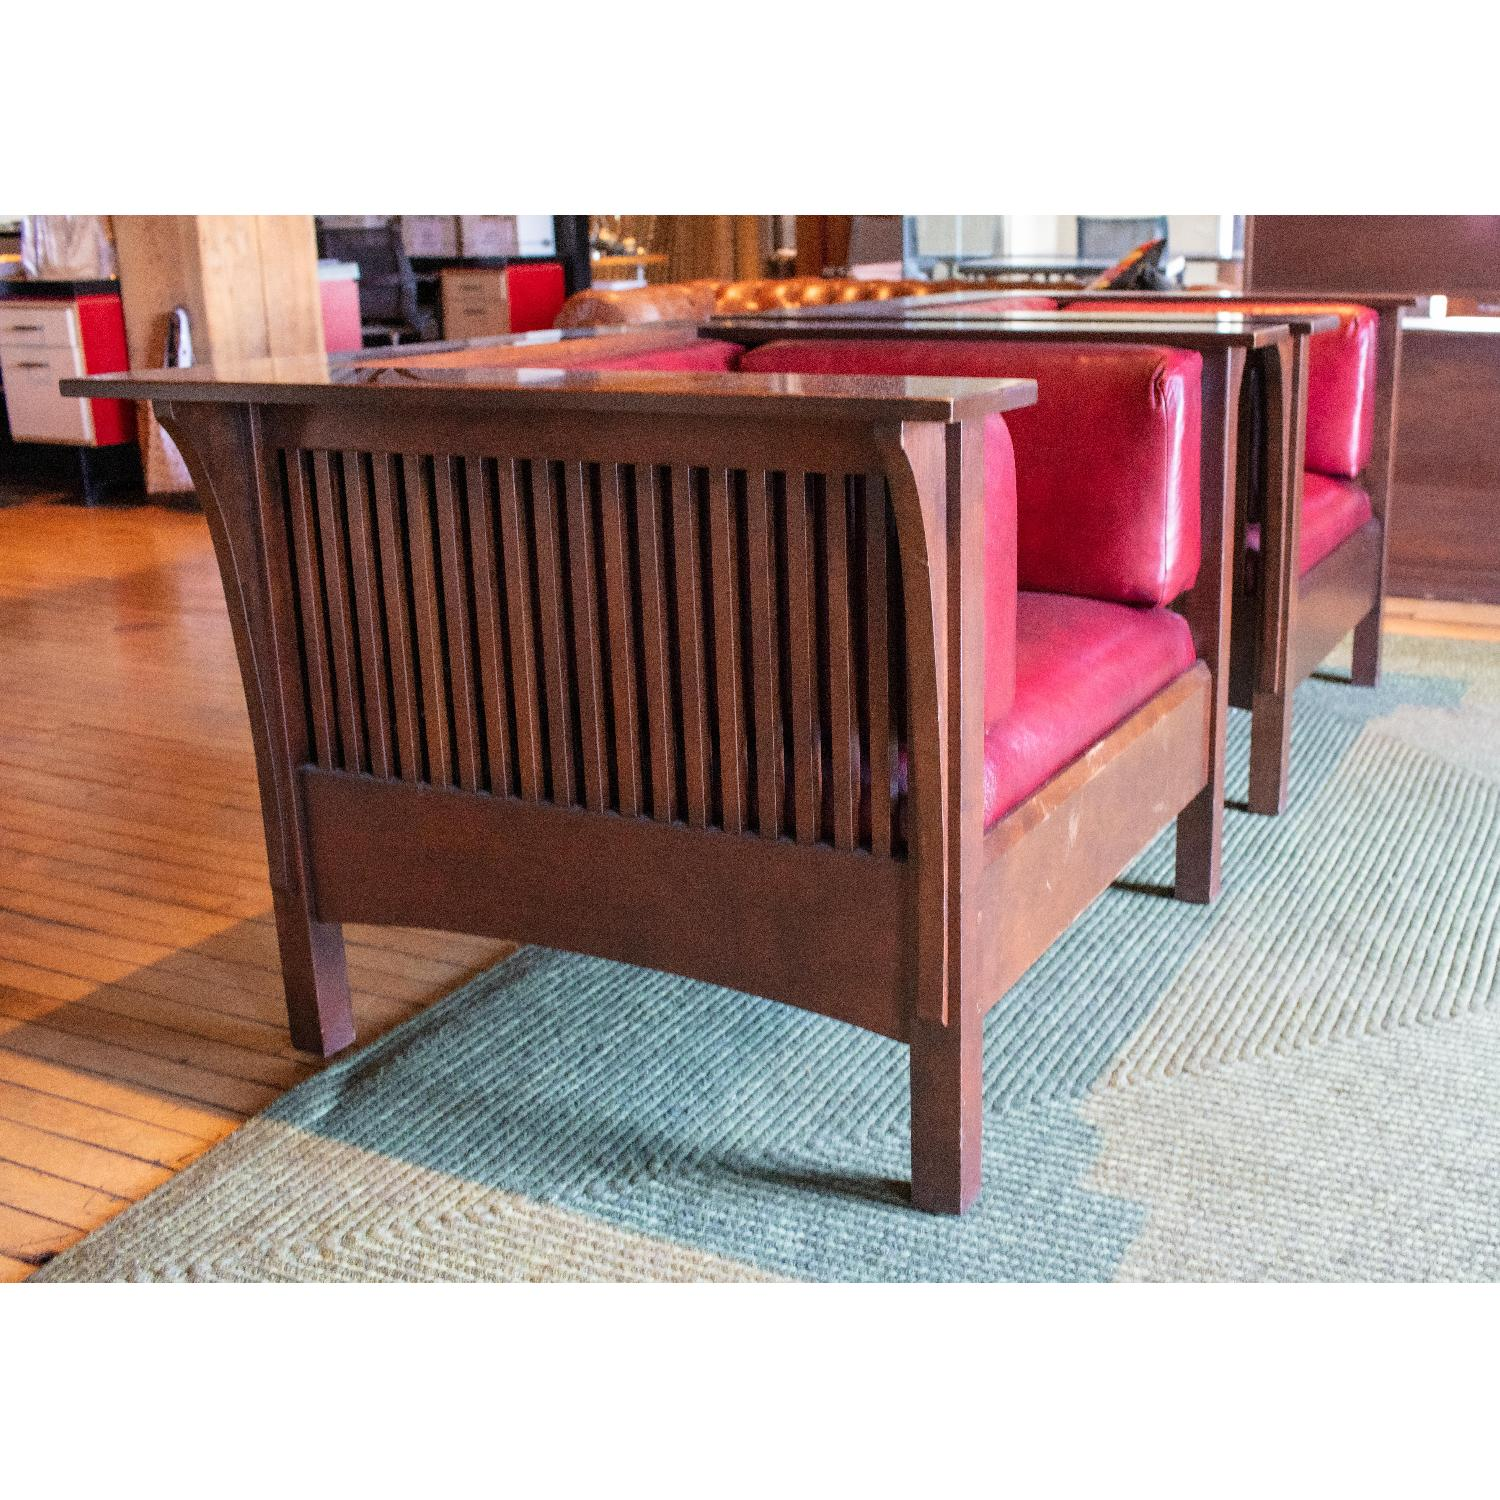 Stickley Prairie Spindle Chairs - image-2